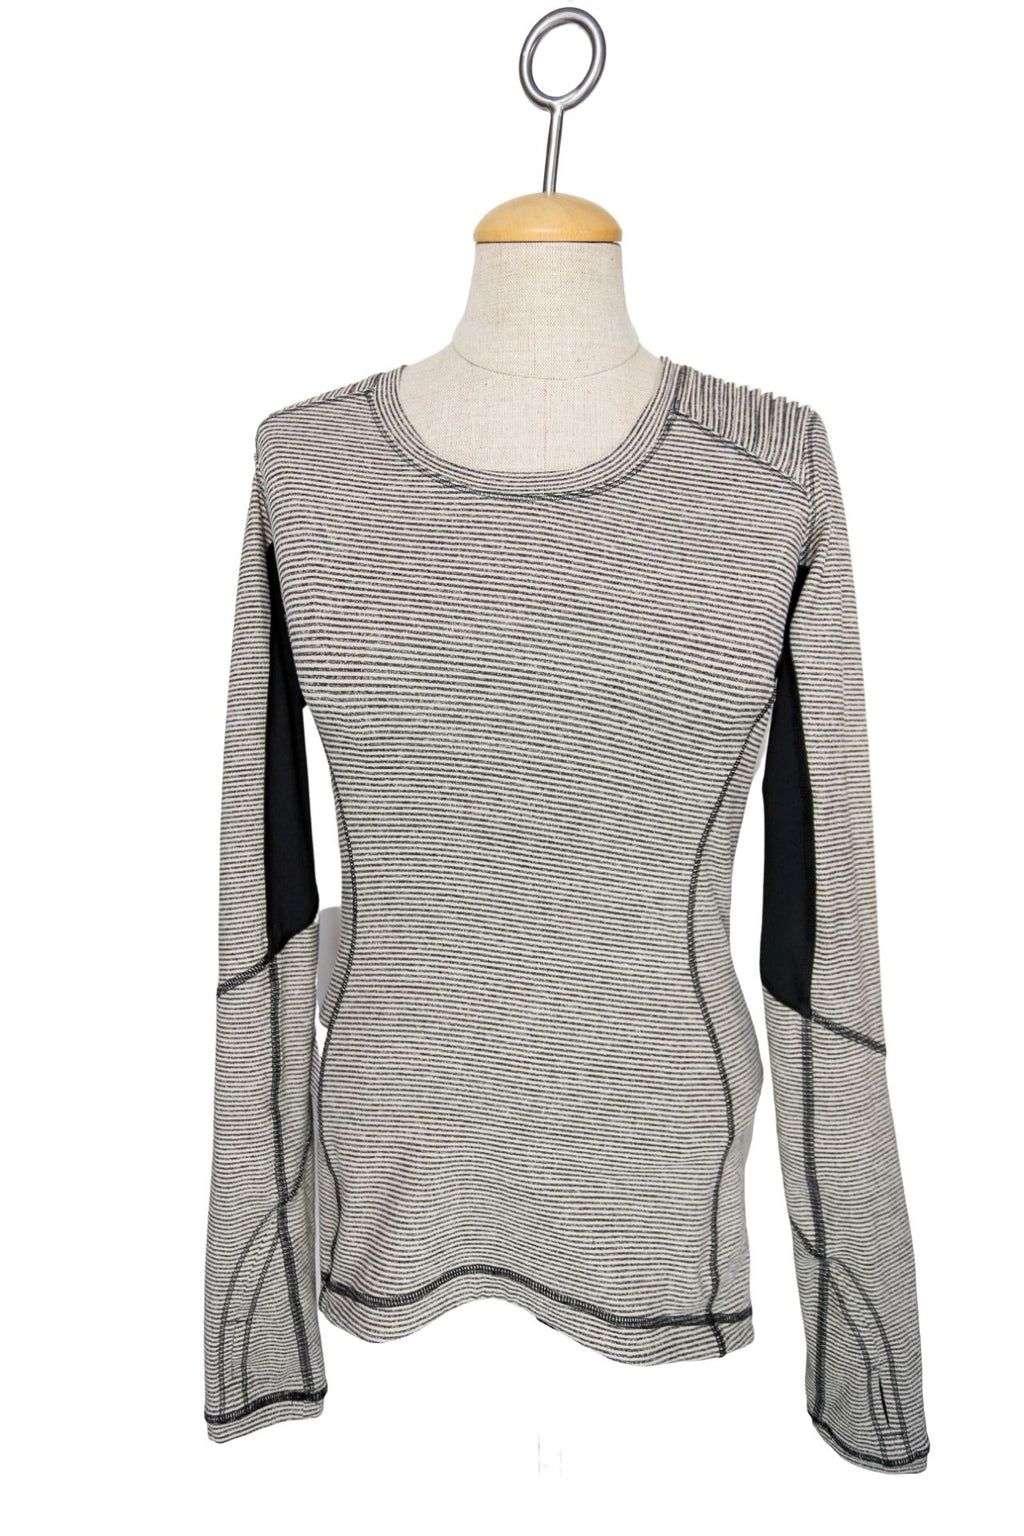 Lululemon Top Pull Over